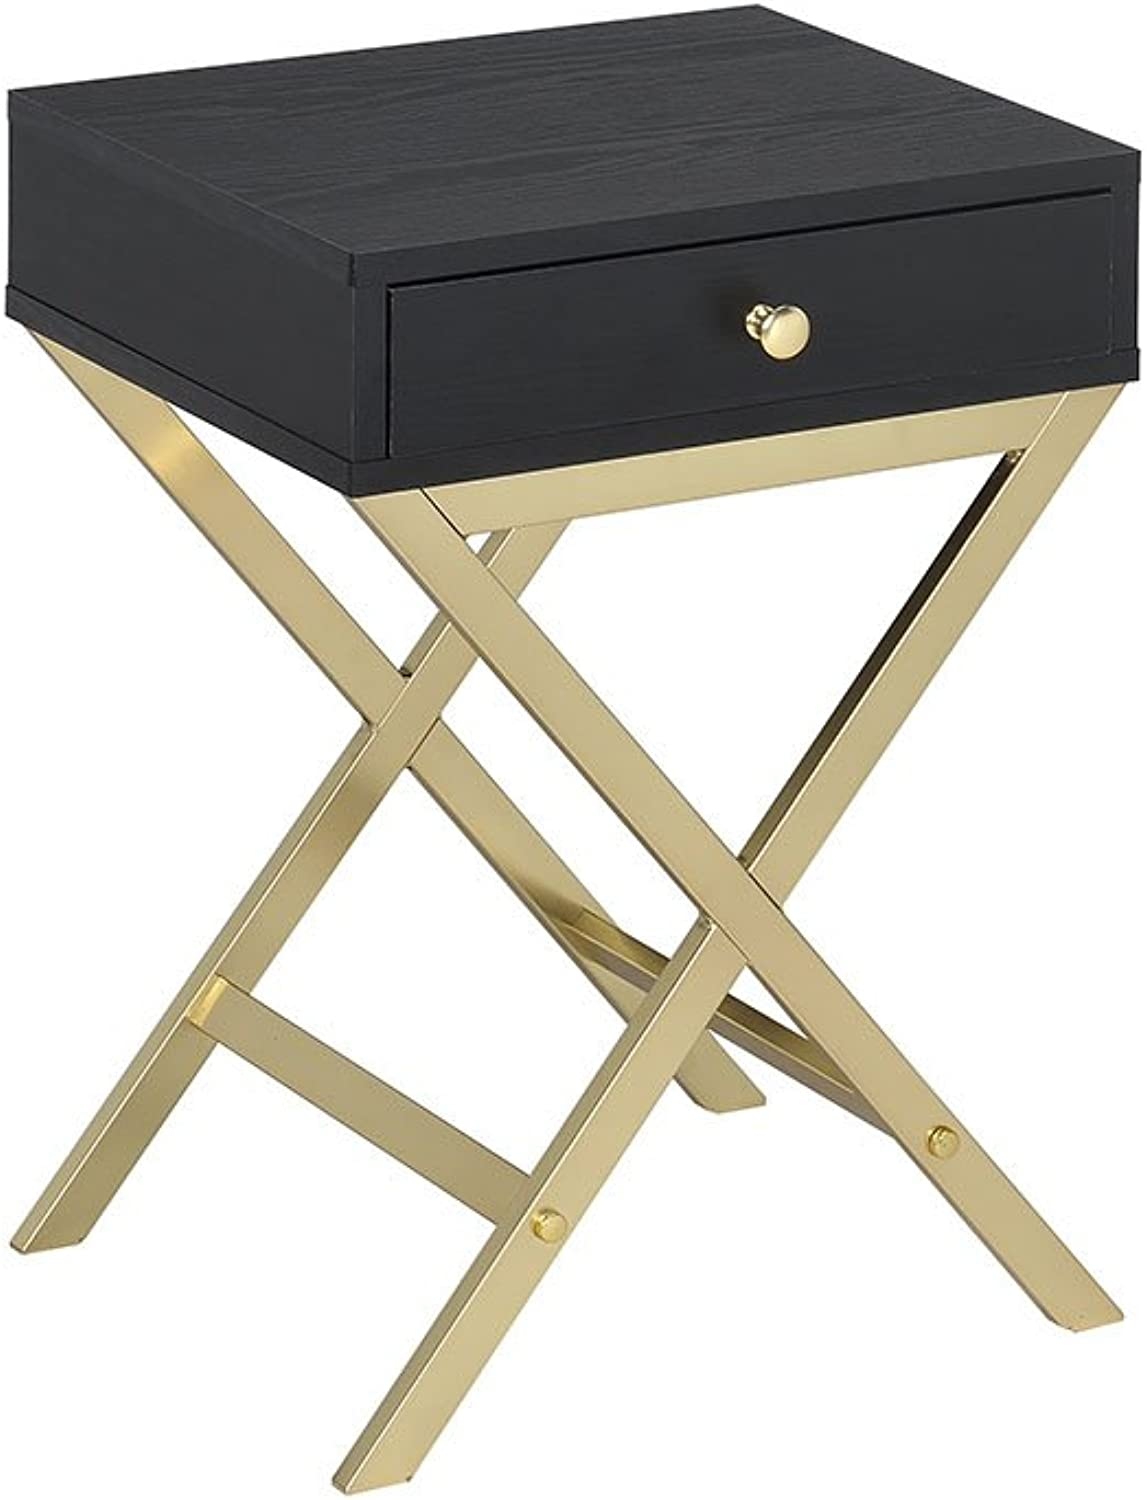 Acme Furniture Acme 82296 Coleen Side Table, Black & Brass